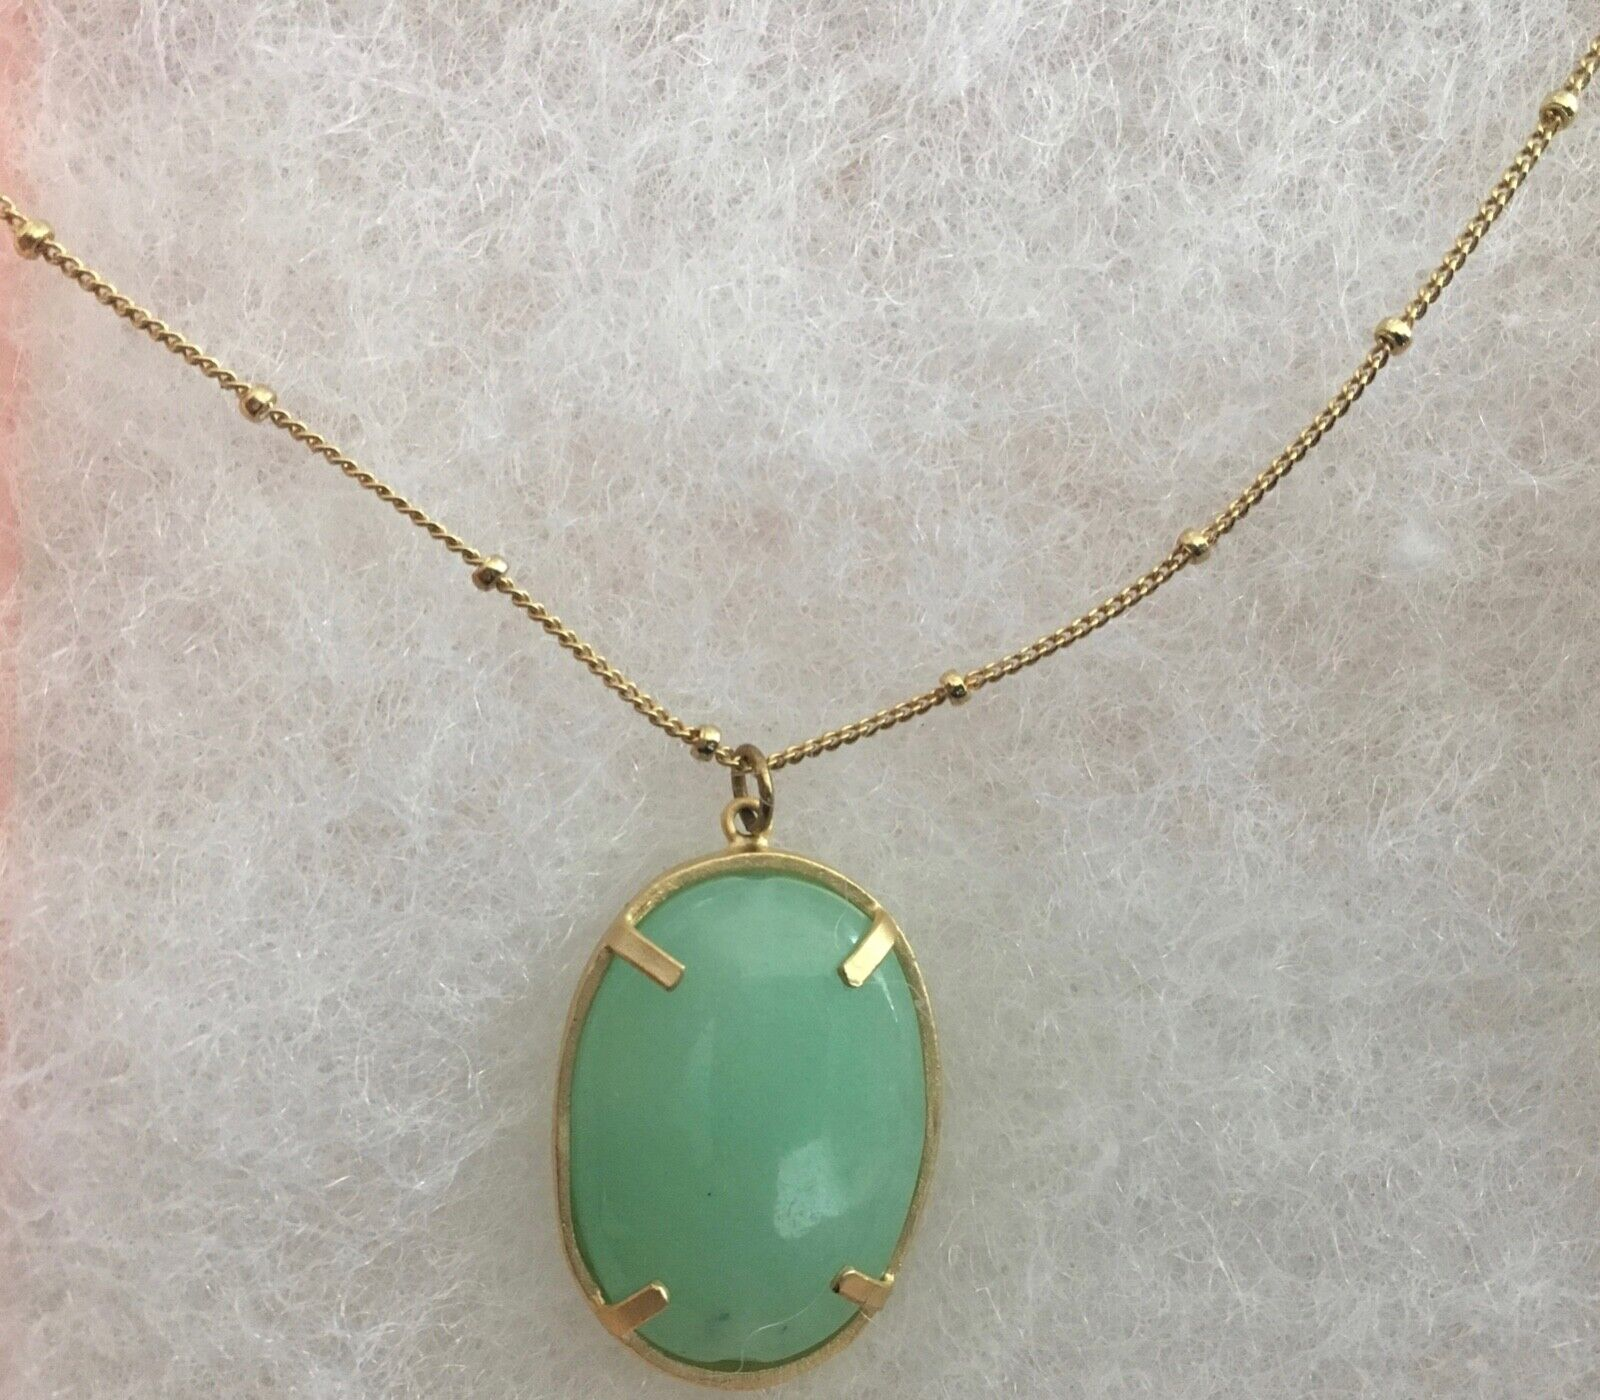 Ladies Pendant Necklace Green Turquoise Set In Gold Fashion